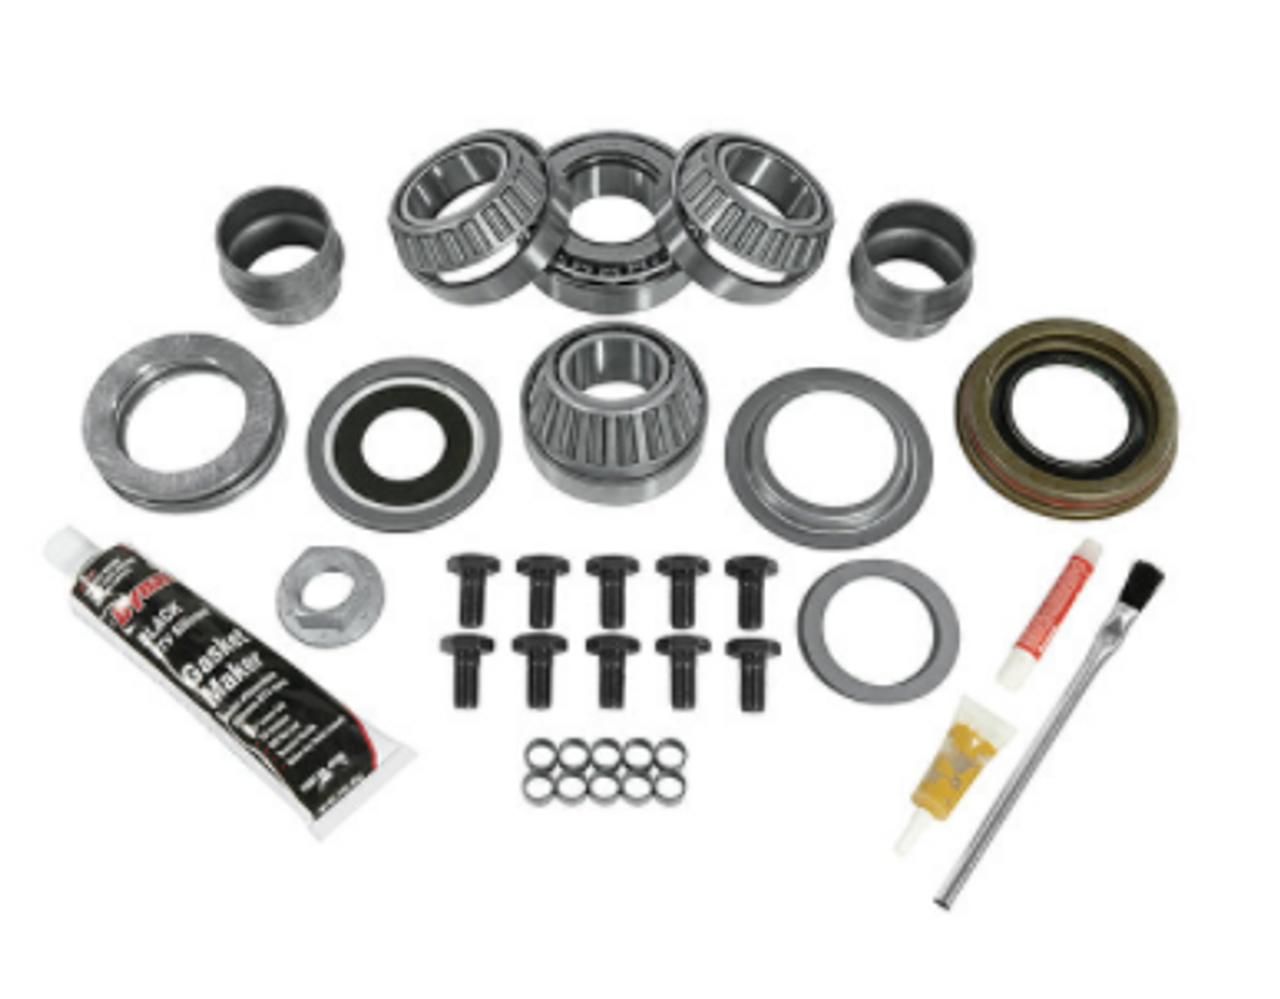 Yukon Gear & Axle YK D30JL-FRONT Master Rebuild Kit for Dana 30/186MM Front Axle for Jeep Wrangler JL 2018+